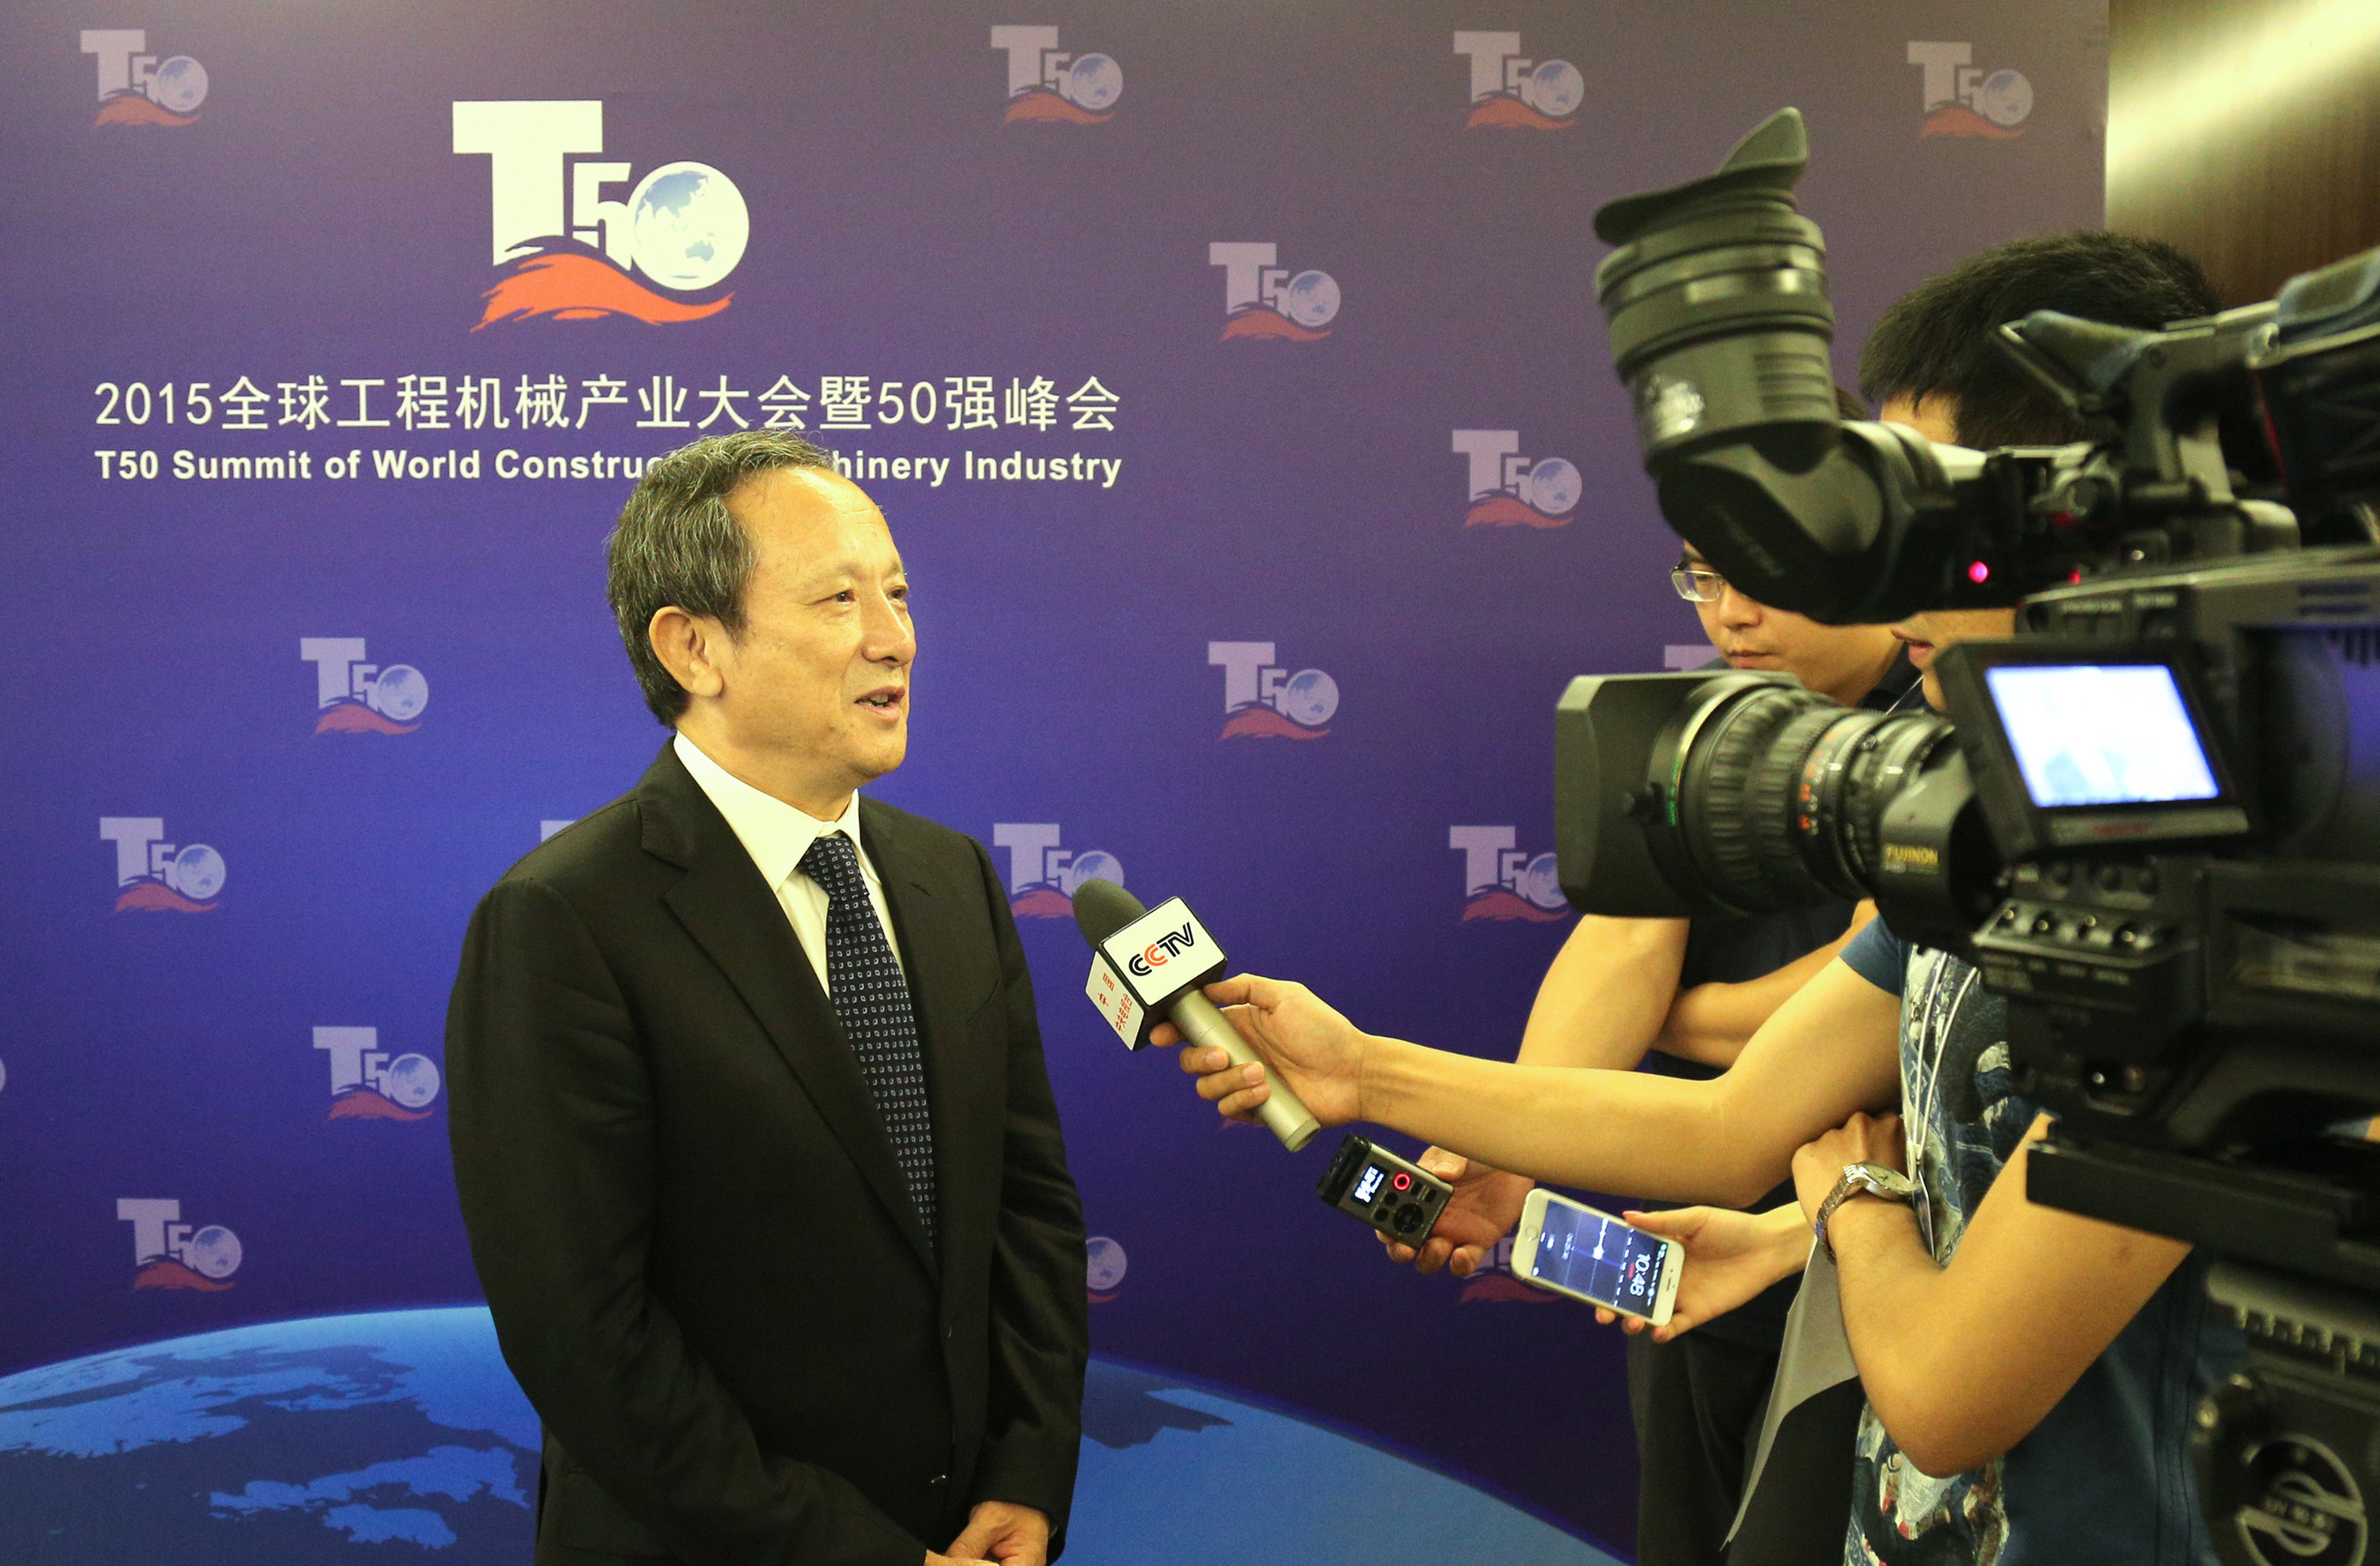 Wang Min, chairman and president of XCMG is interviewed by media at T50 Summit